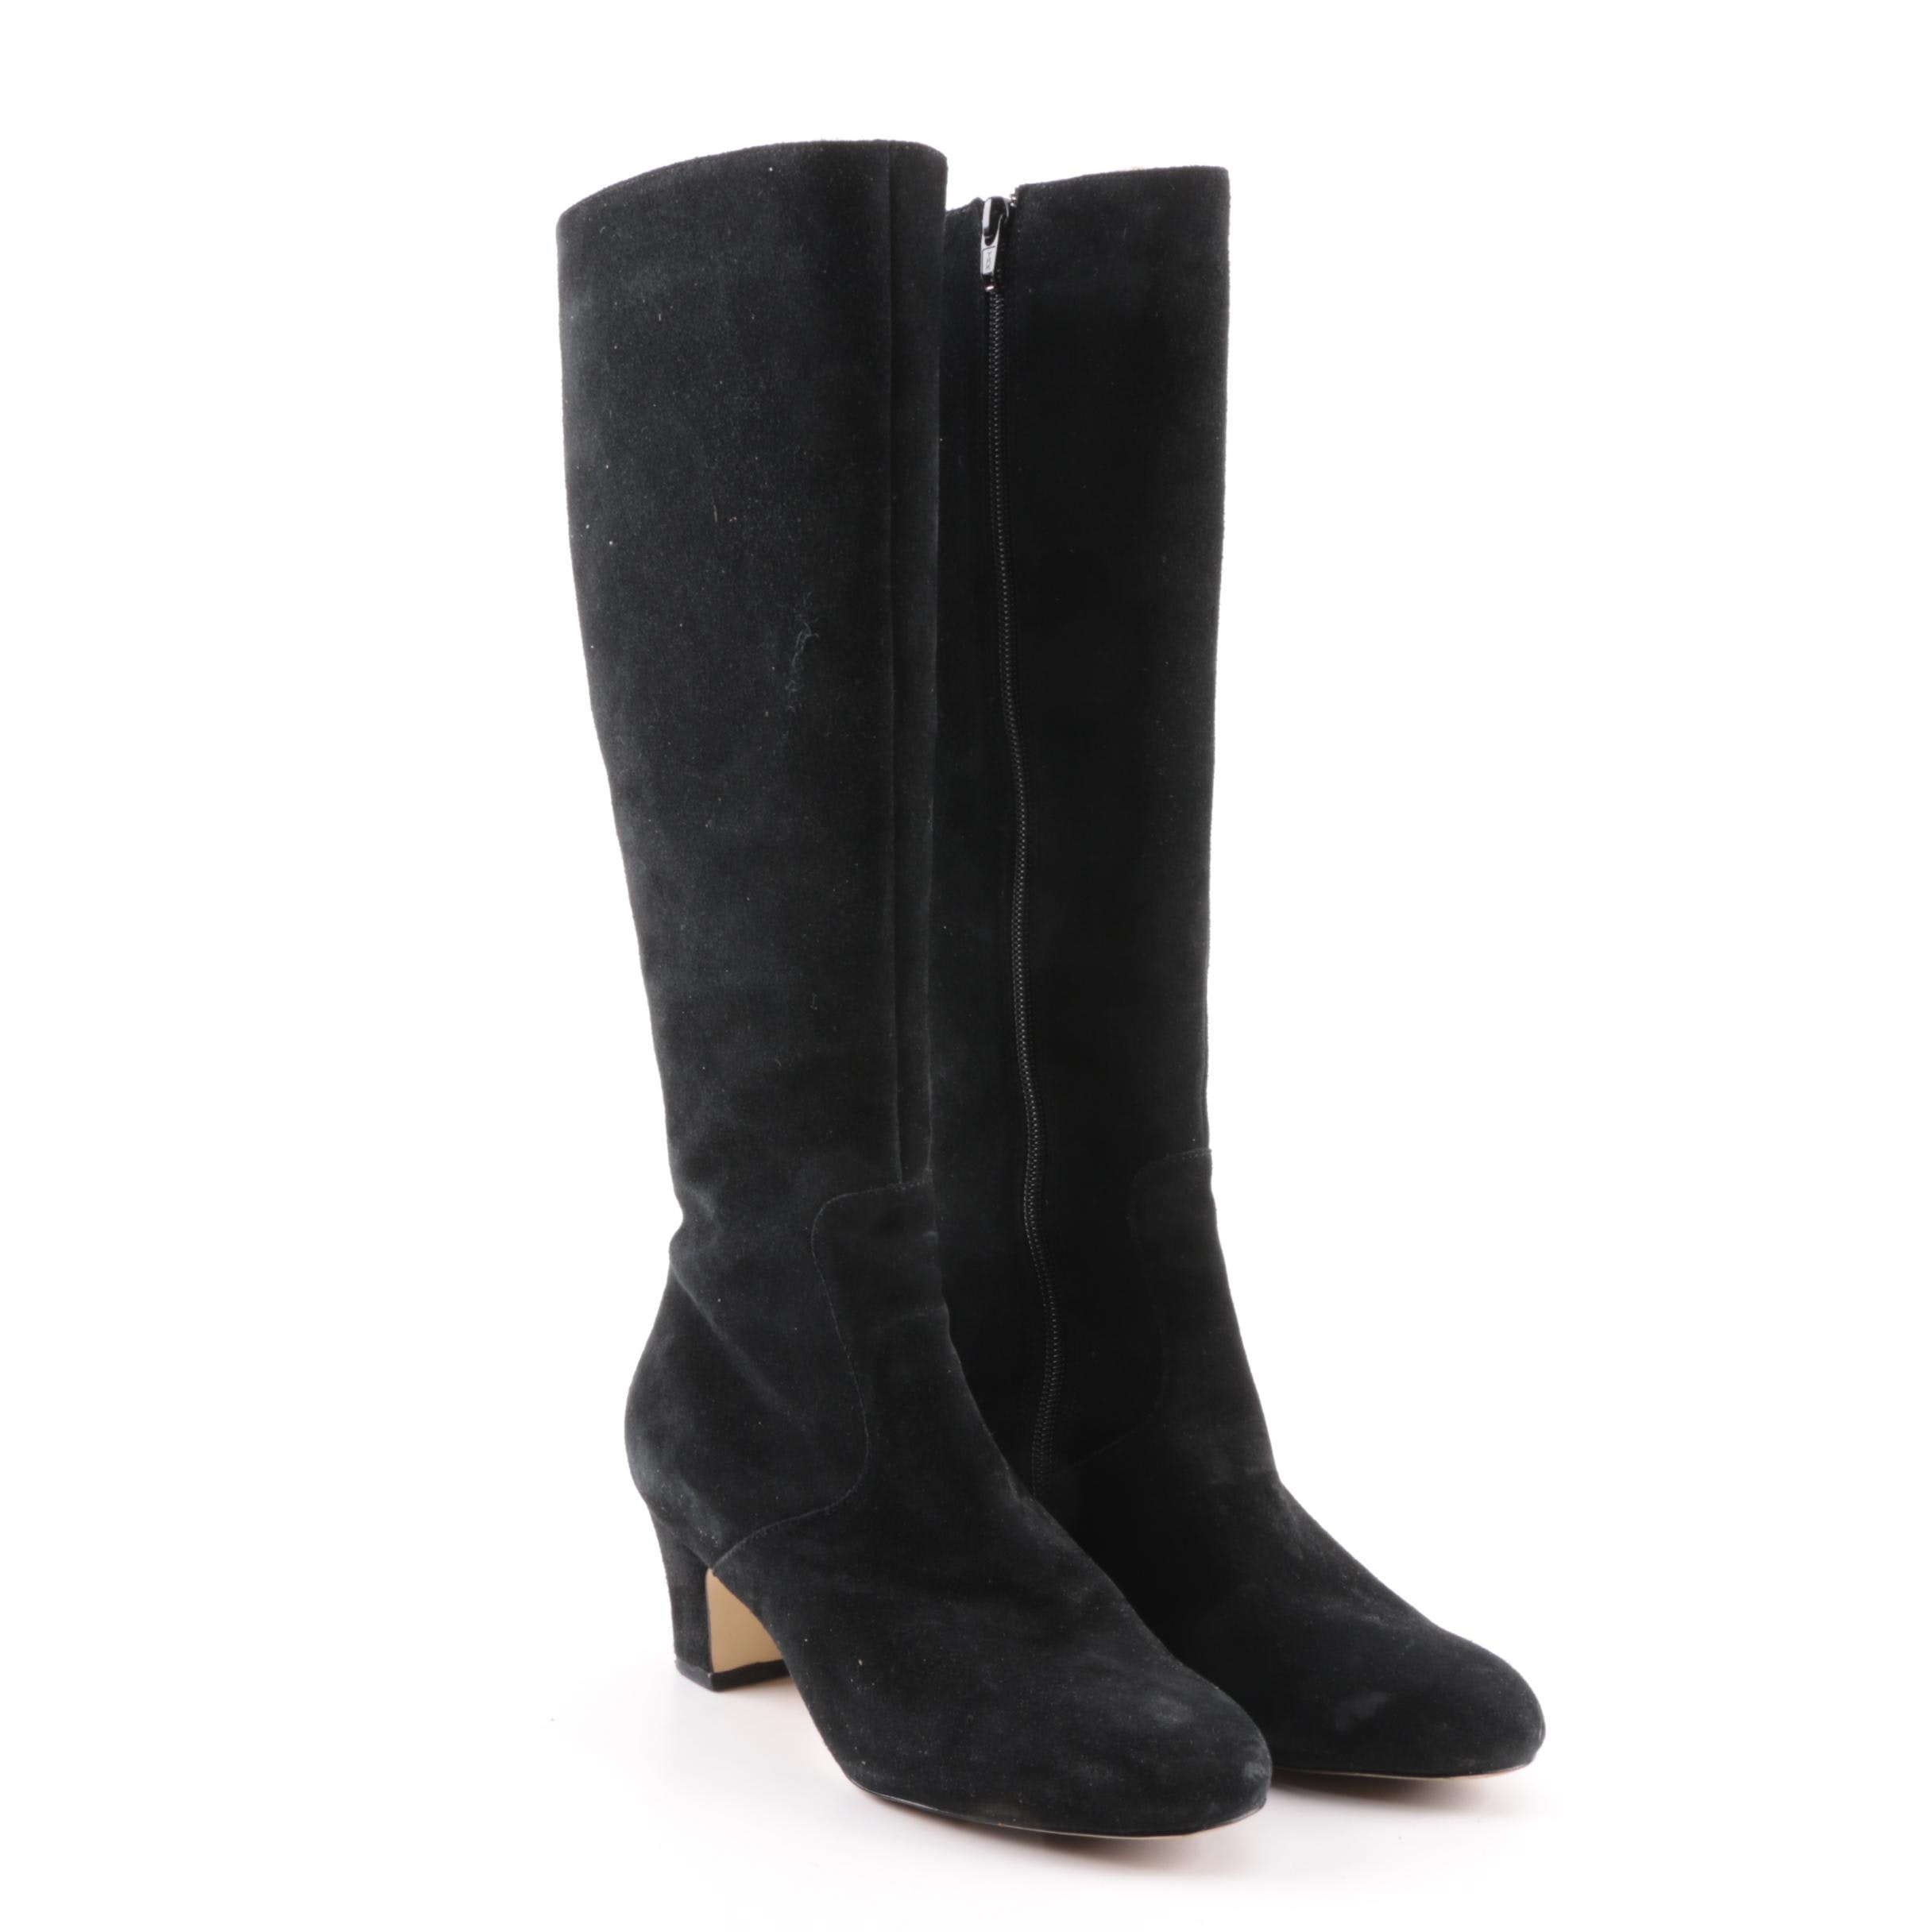 Women's Natural Comfort Black Suede Boots